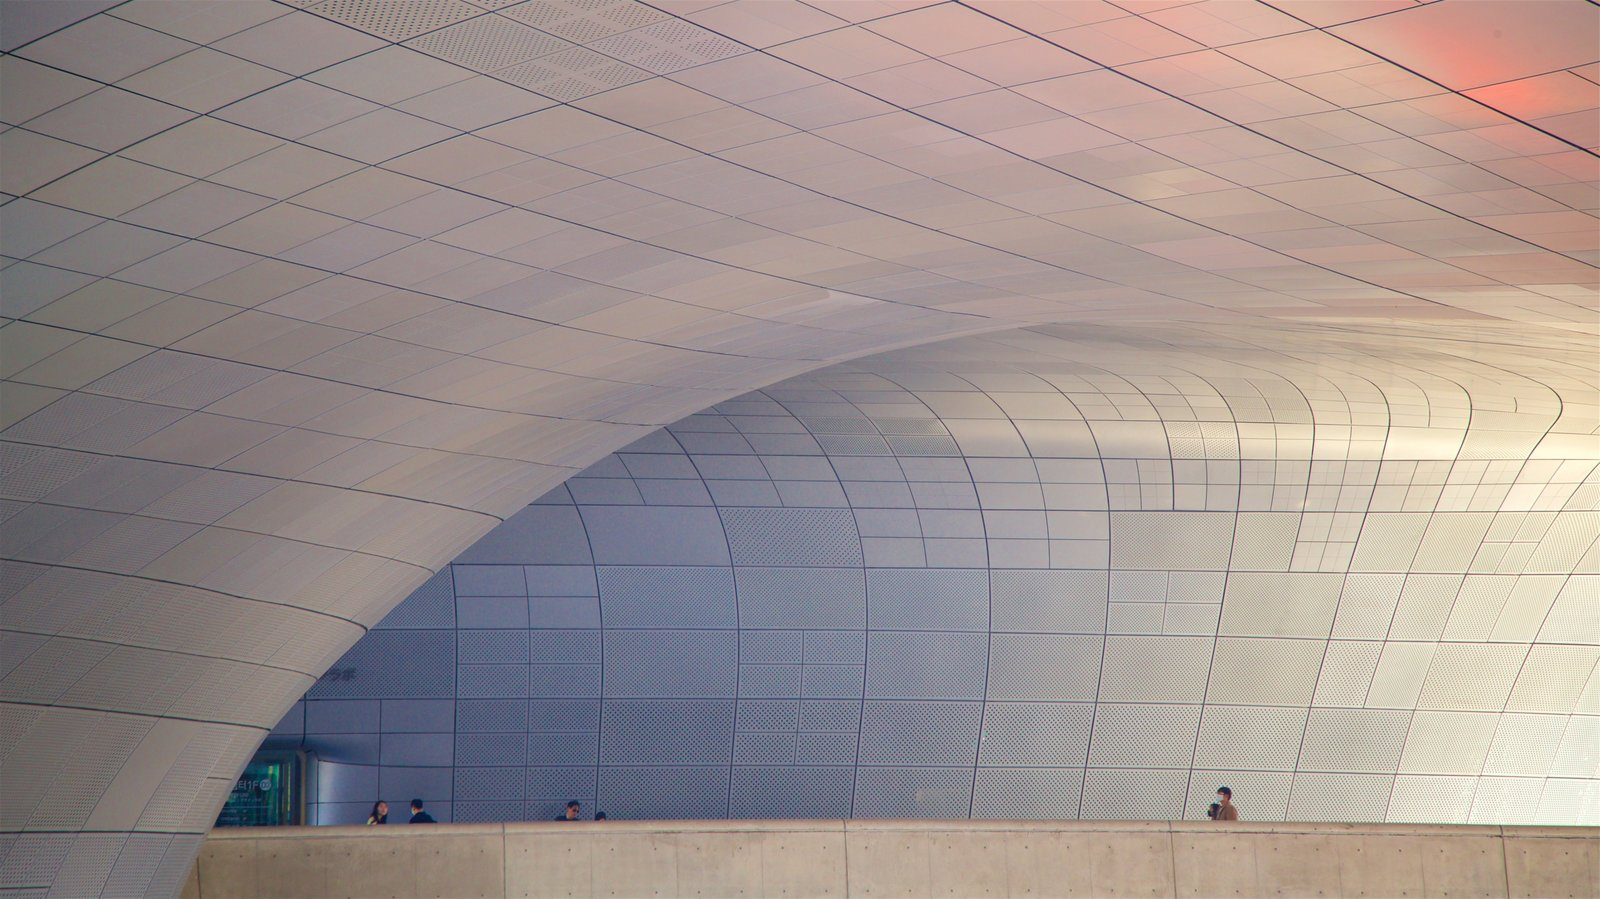 Dongdaemun Design Plaza which includes interior views and modern architecture